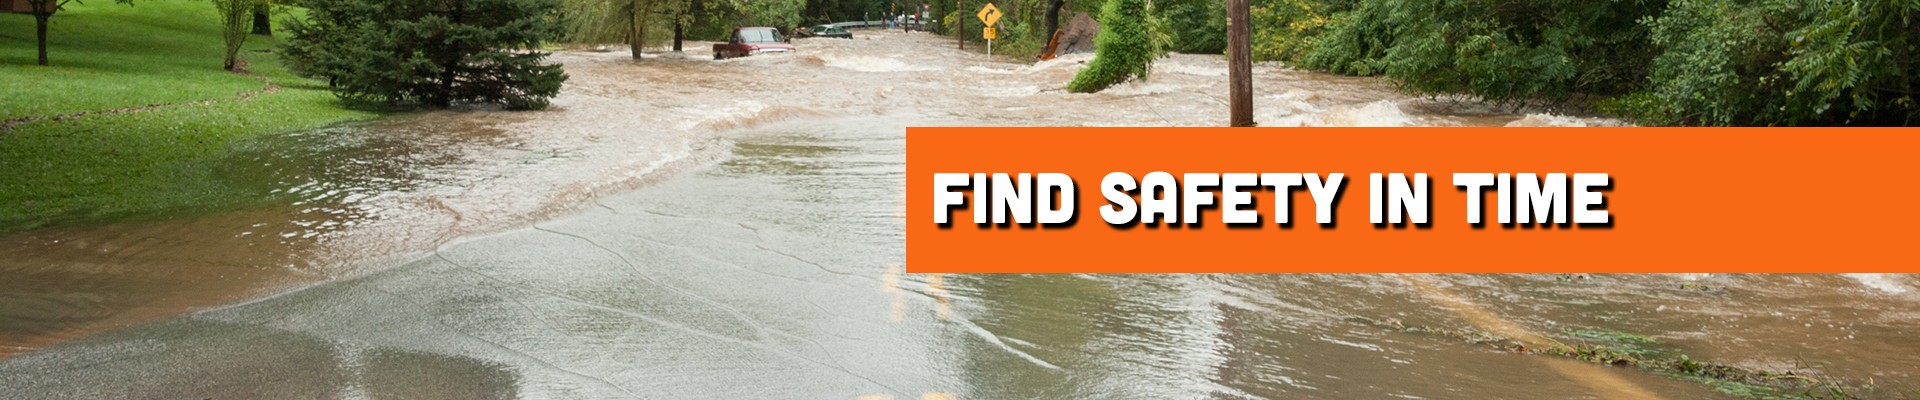 Find safety in time before flooding becomes too bad while driving your RV.